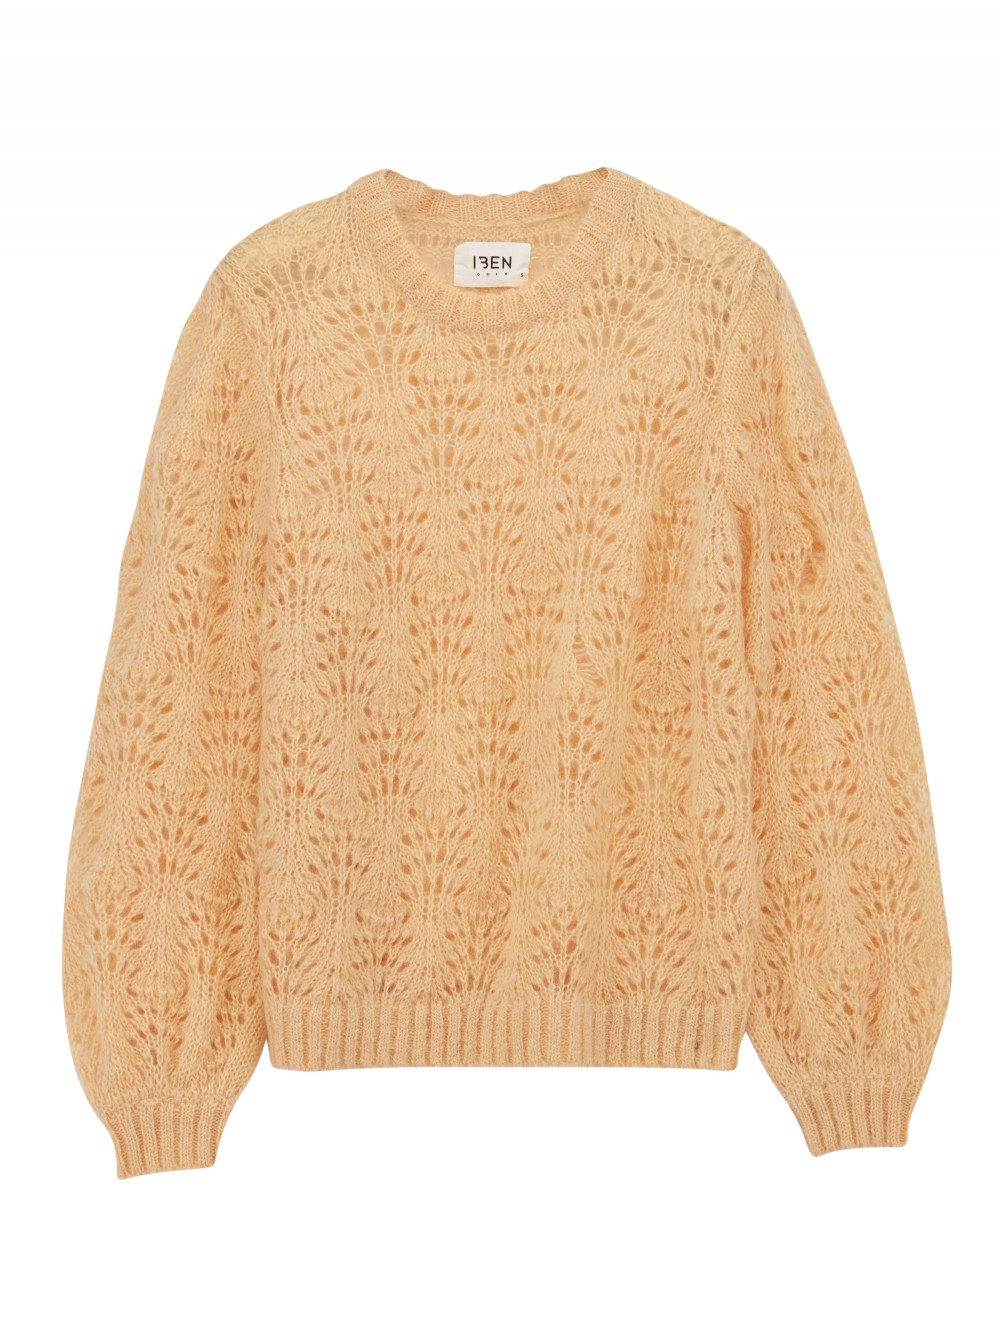 Iben Barney Sweater